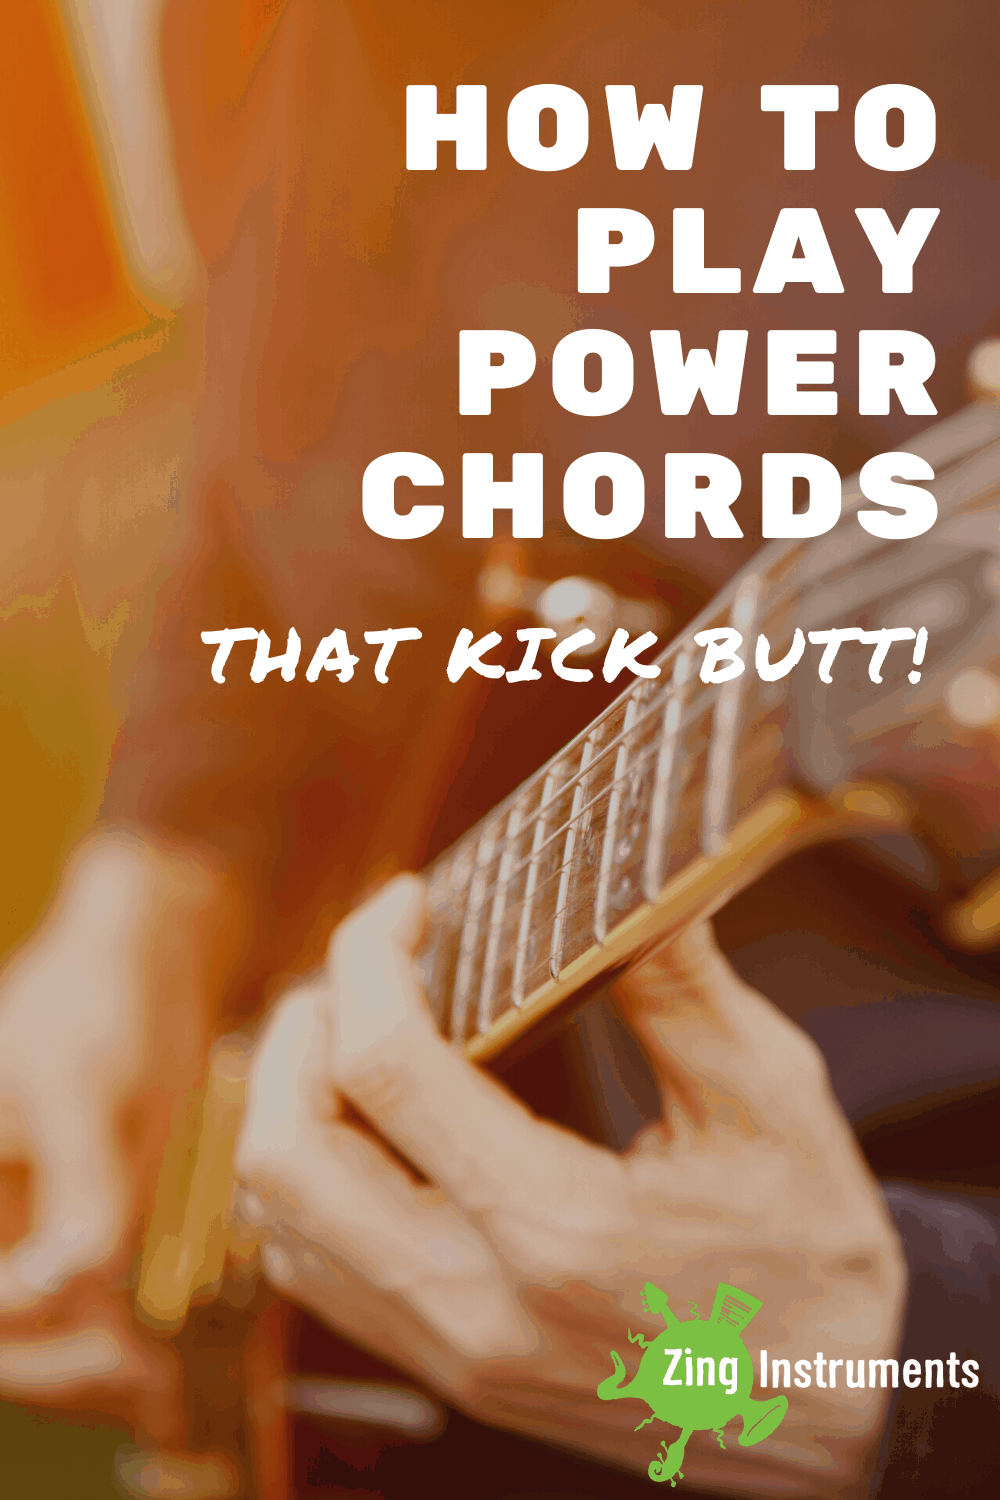 how to play power chords that kick butt!